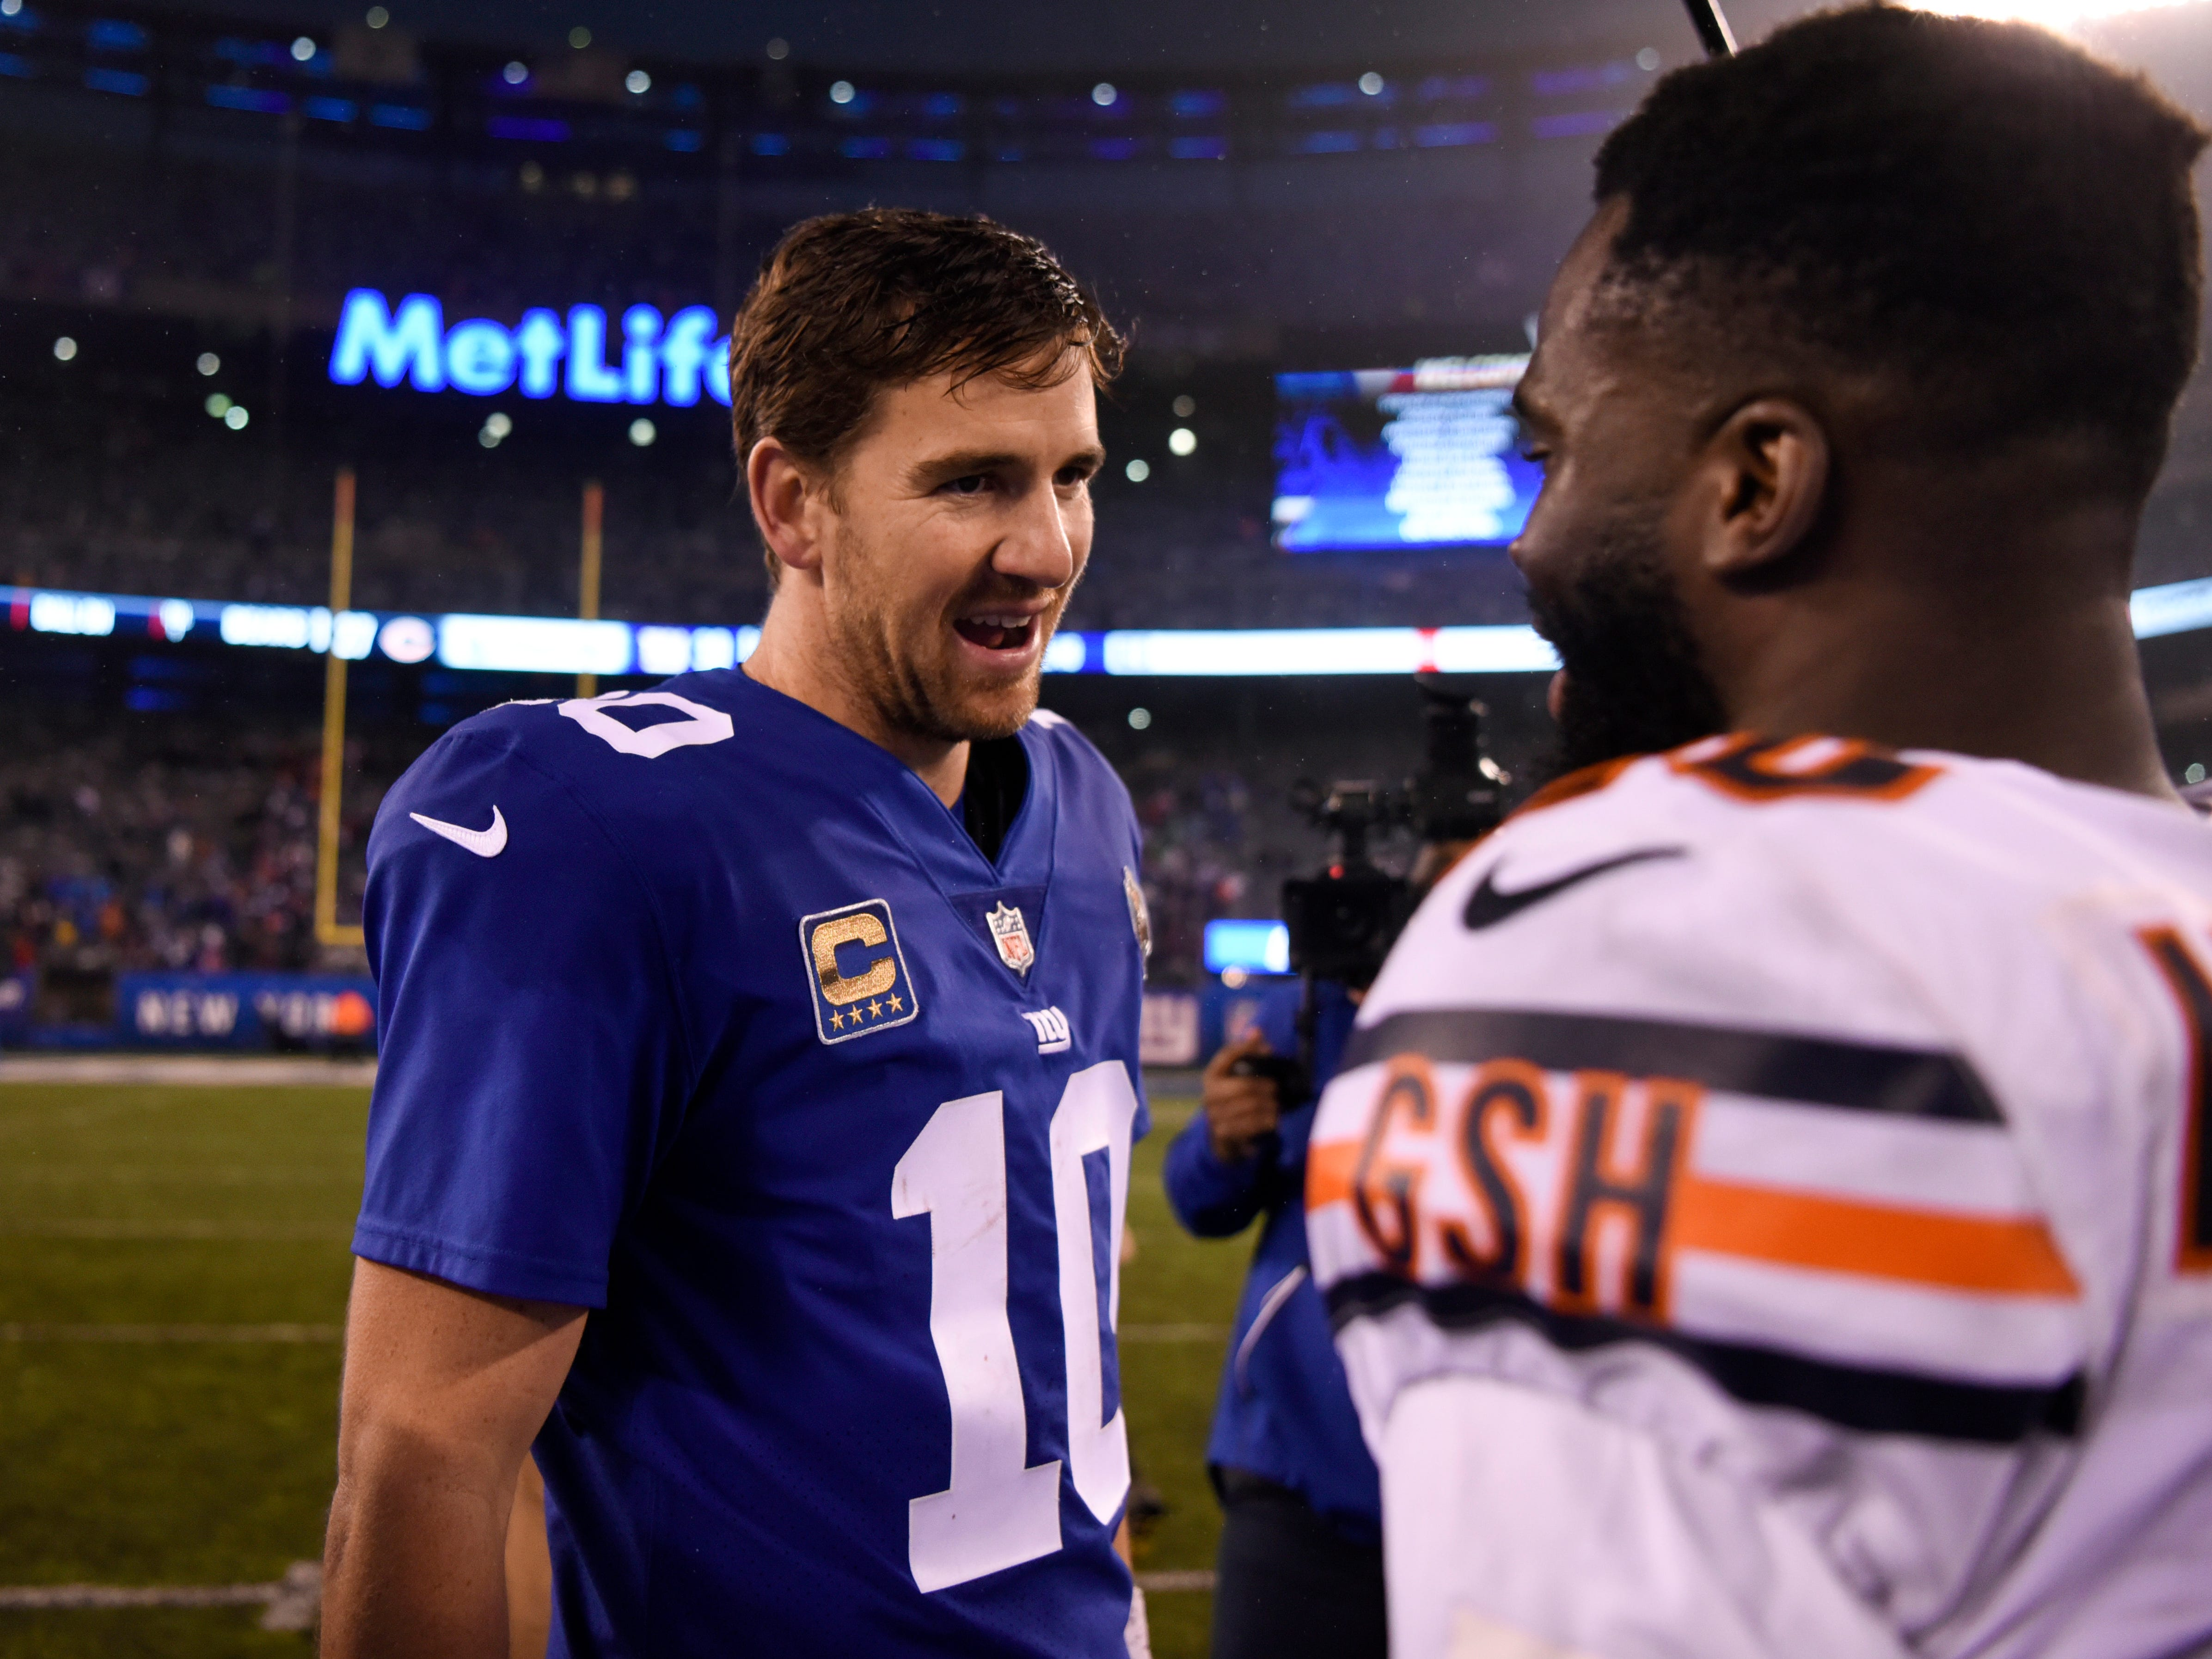 New York Giants quarterback Eli Manning (10) talks to former teammate Chicago Bears cornerback Prince Amukamara (20) after the game. The New York Giants defeat the Chicago Bears in overtime 30-27 on Sunday, Dec. 2, 2018, in East Rutherford.